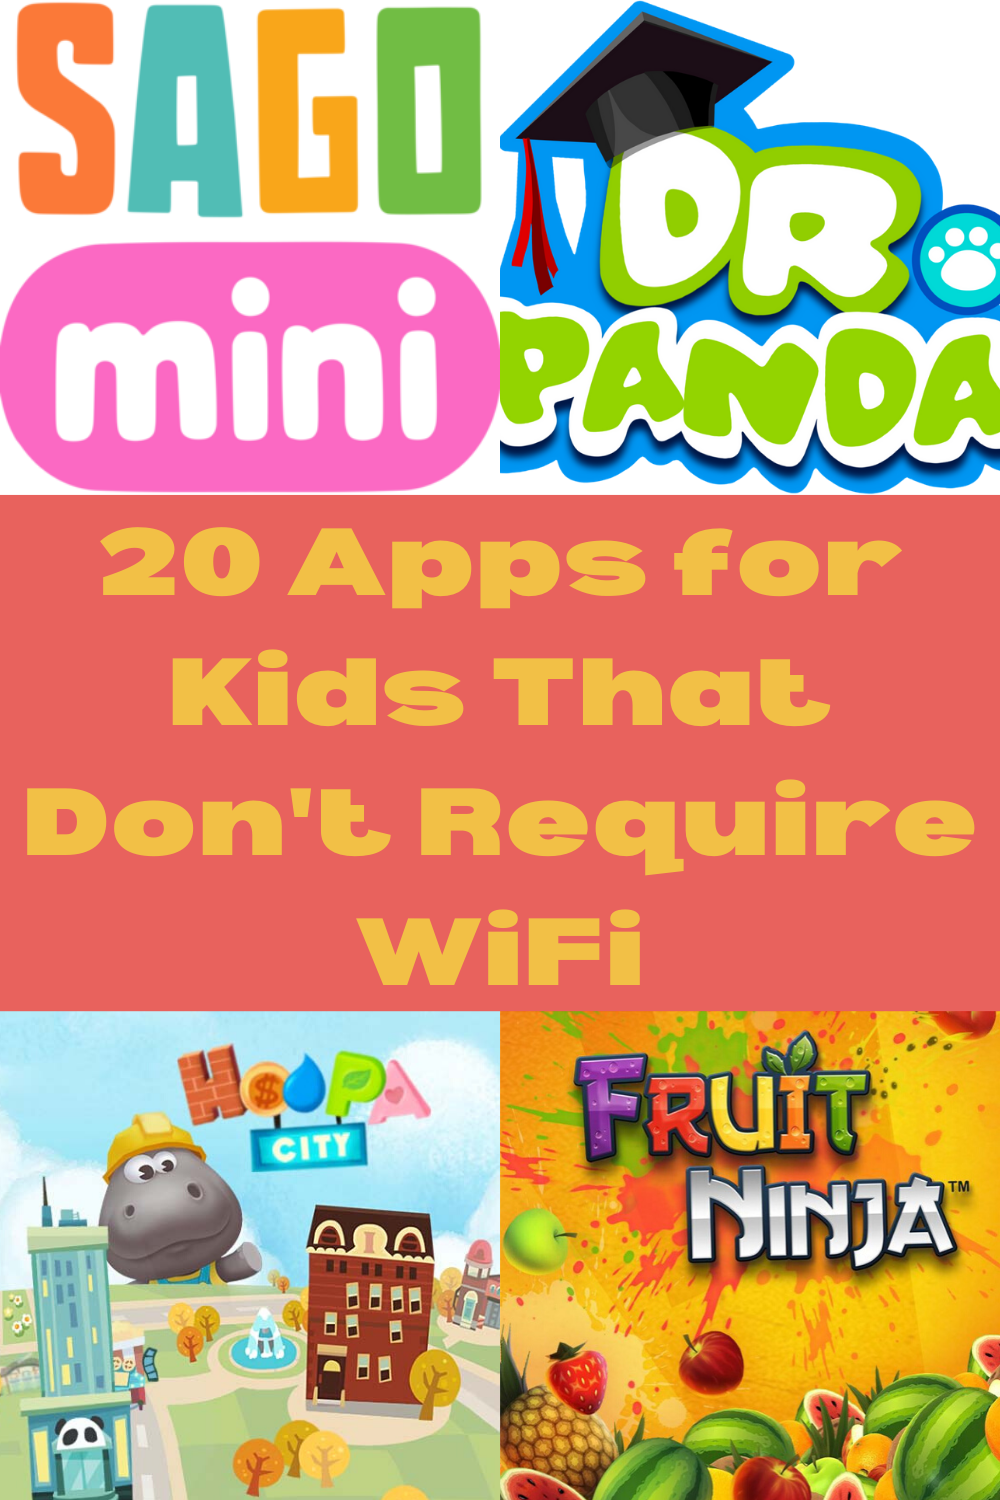 The Best Apps for Kids That Don't Require WiFi Family